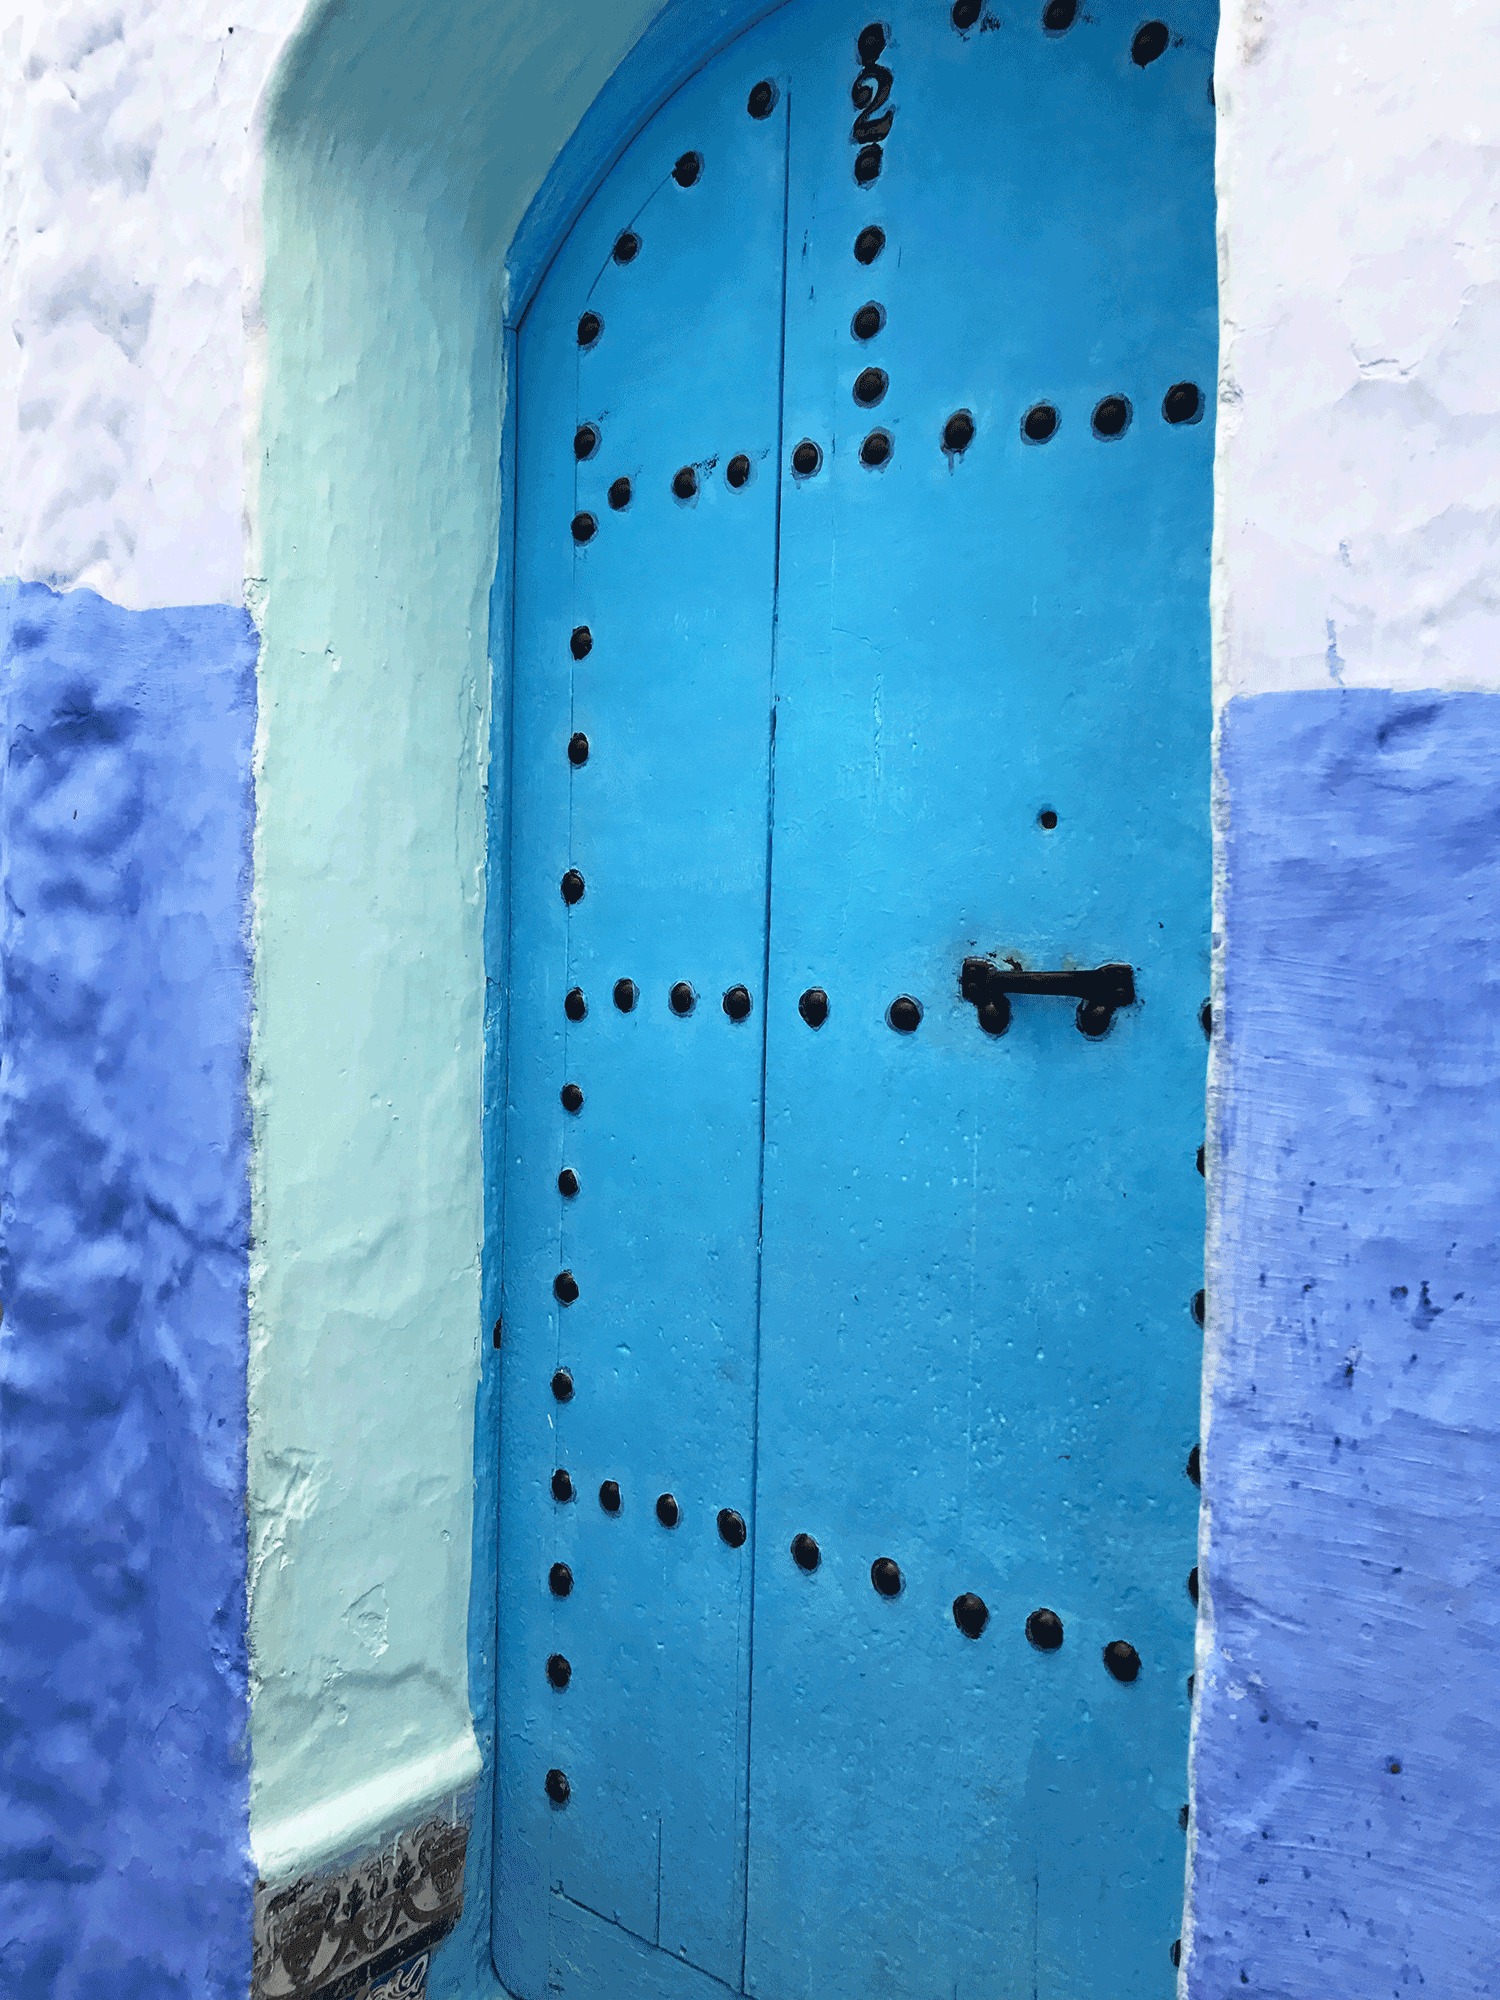 Chefchaouen-Morocco-image-blue-door-close-up.png